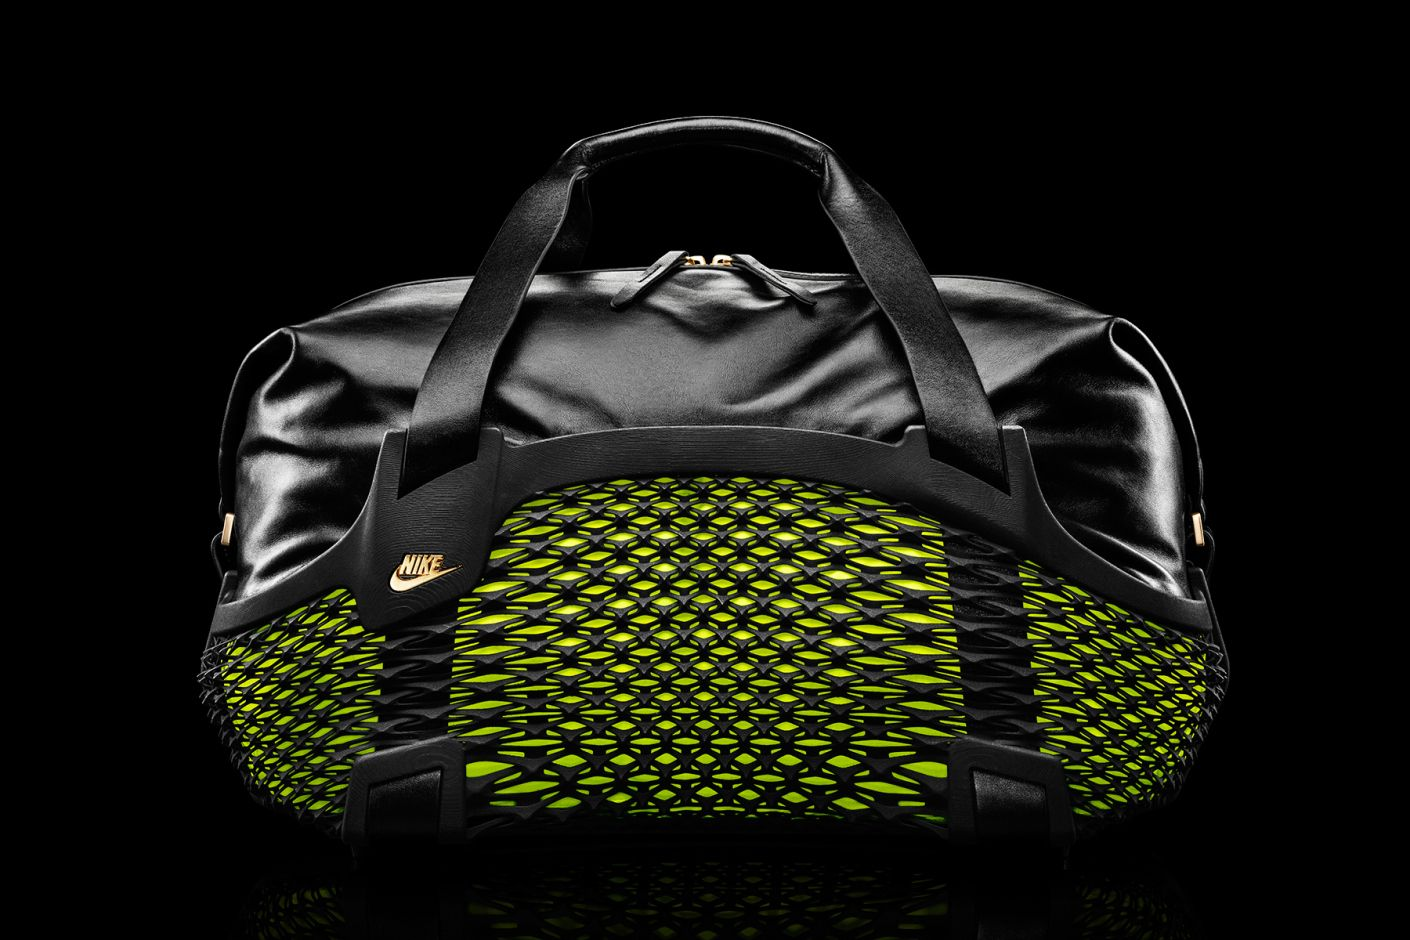 62ed1d8c608f Nike Uses 3D Printing in its 2014 Summer Football Equipment Collection